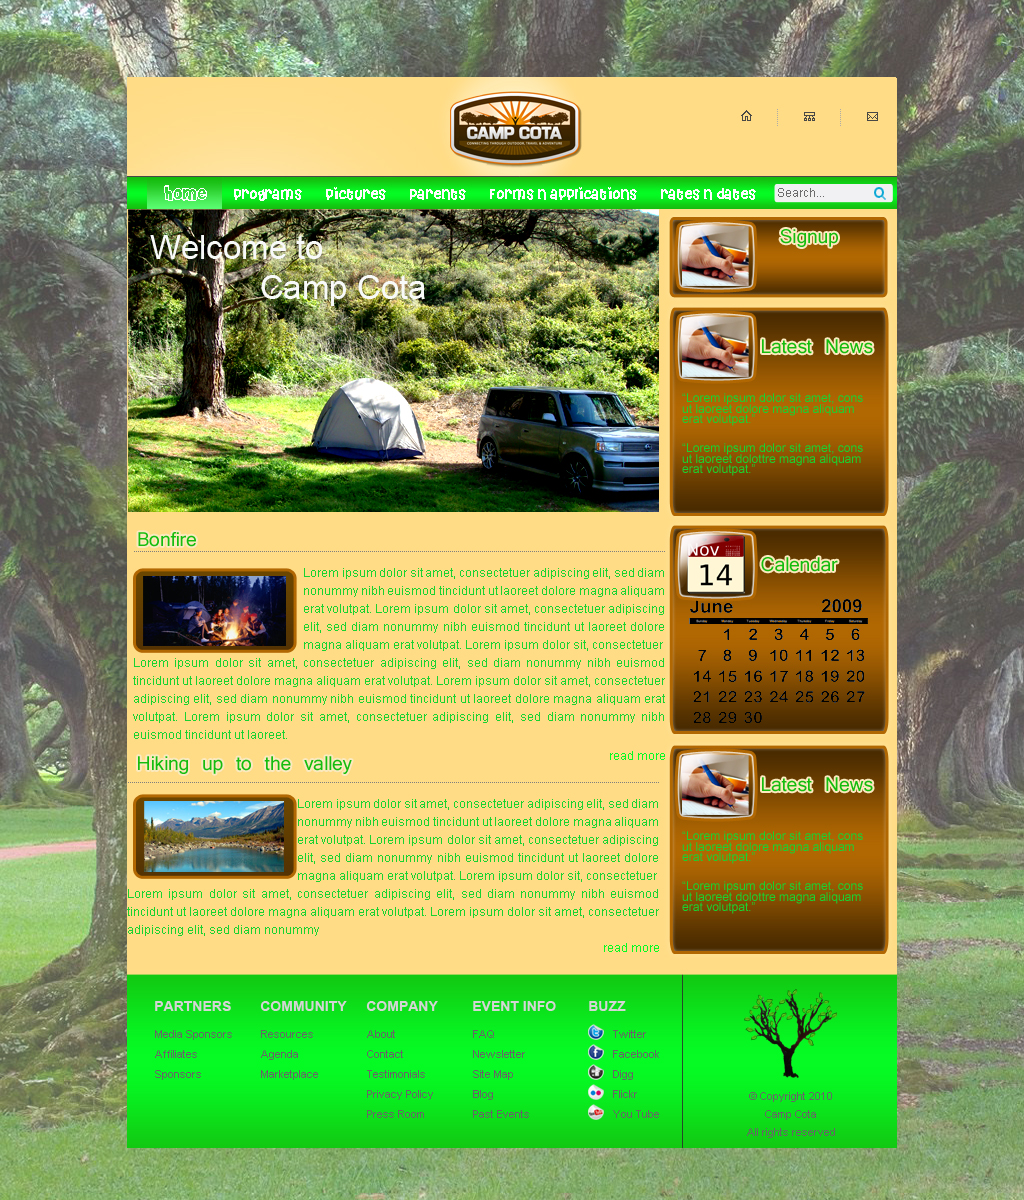 Web Page Design by Geniye - Entry No. 3 in the Web Page Design Contest Camp COTA - Clean, Crisp Design Needed.